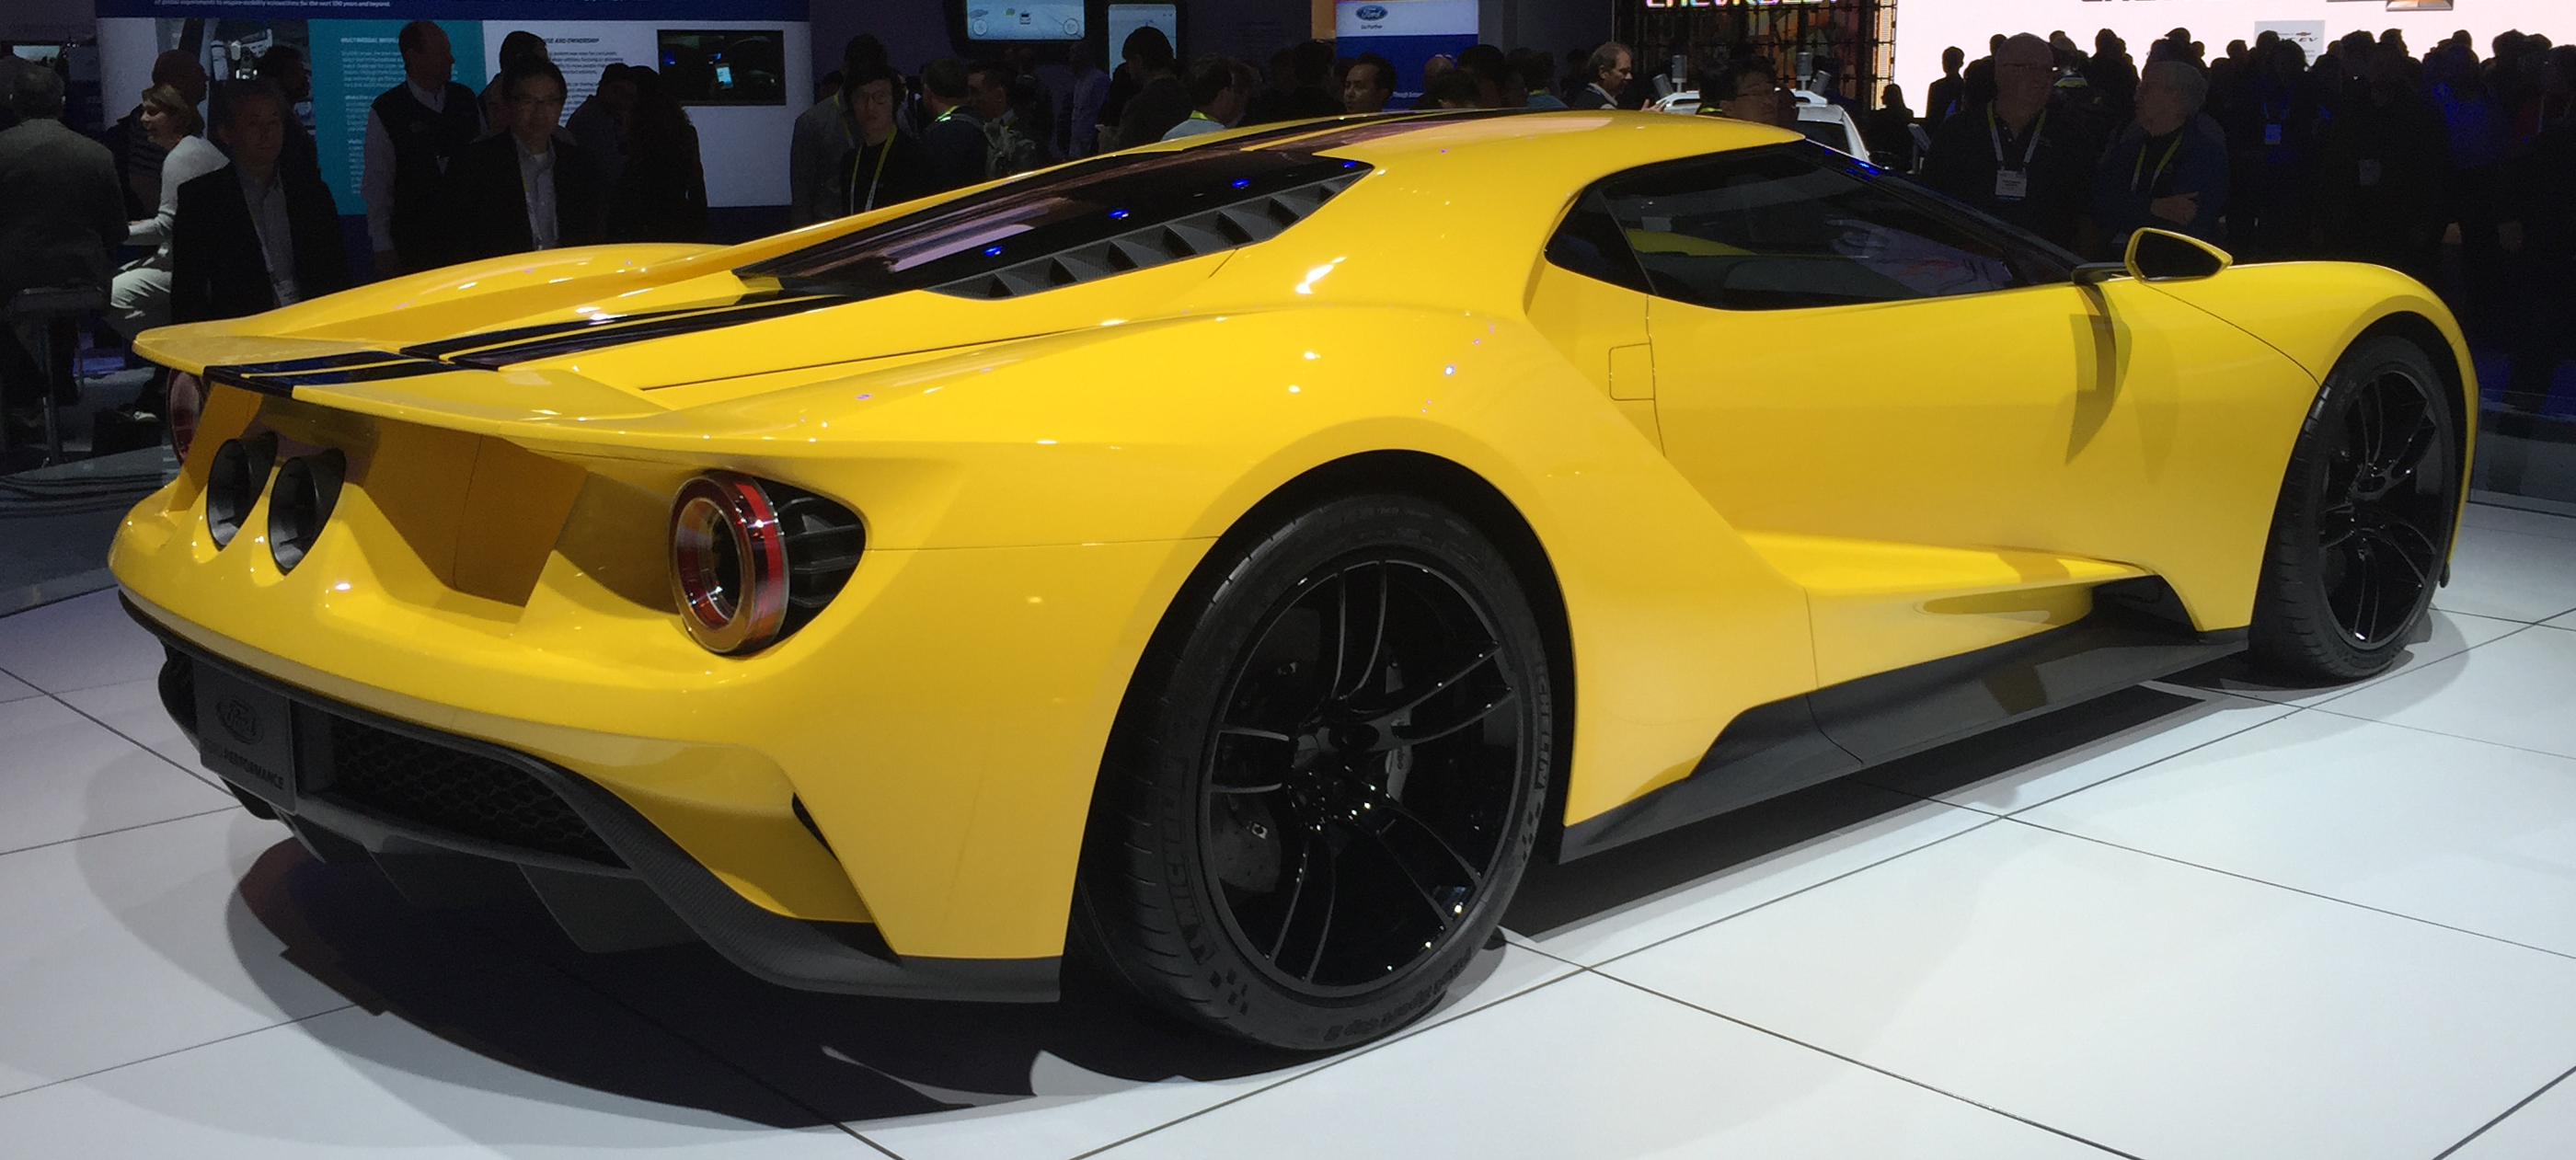 2017 Ford GT Yellow CES Rear